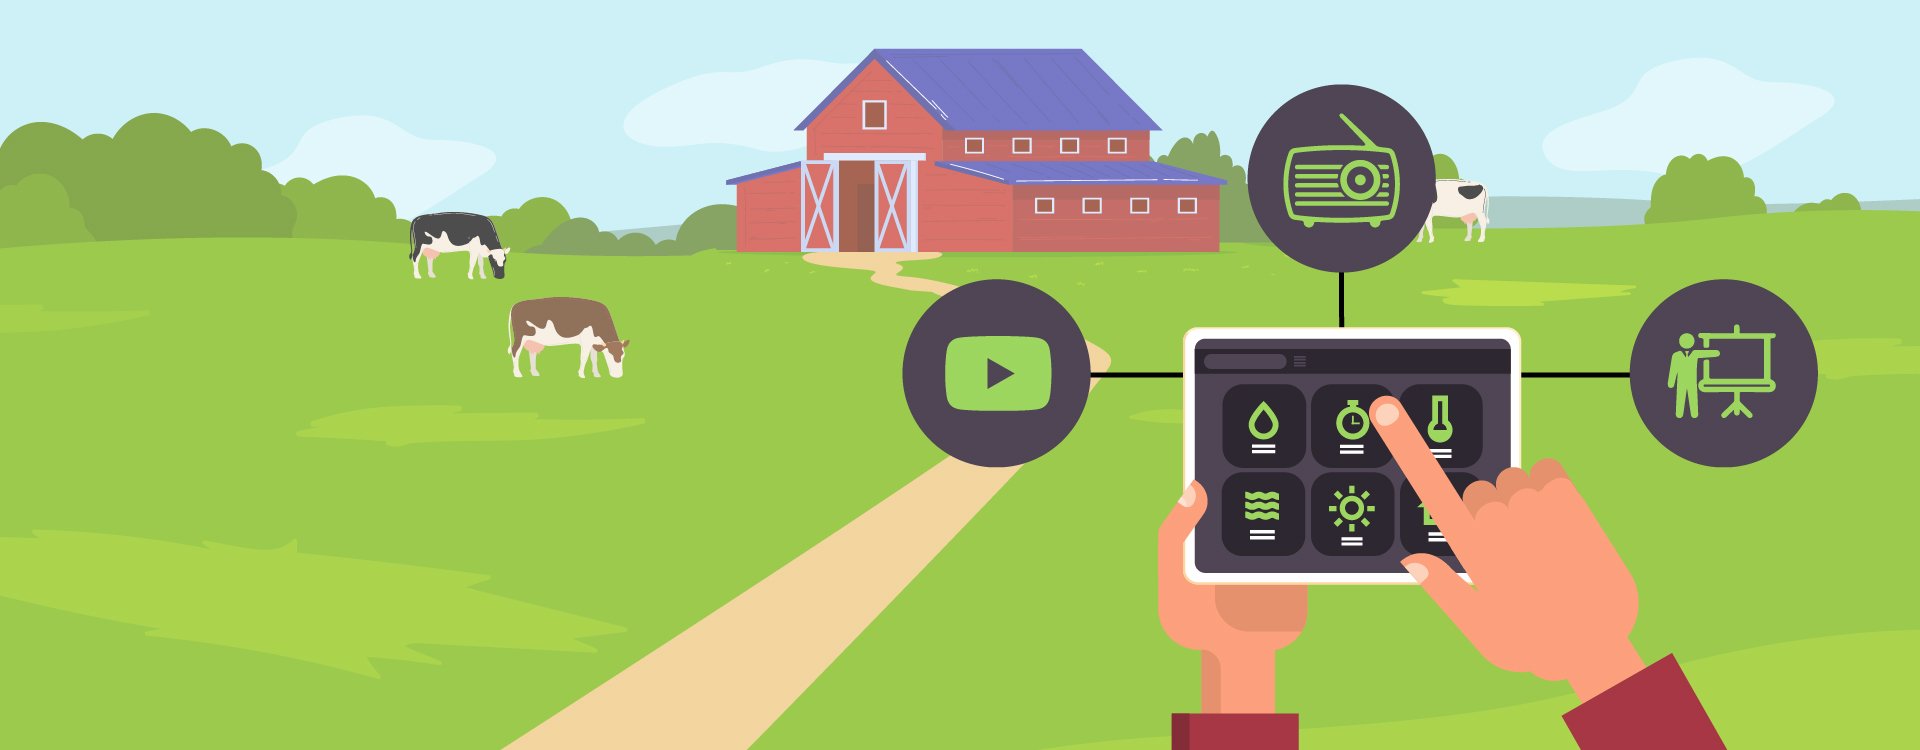 The marketing trends in agritech startups will be mixture of mass, video and experiential.